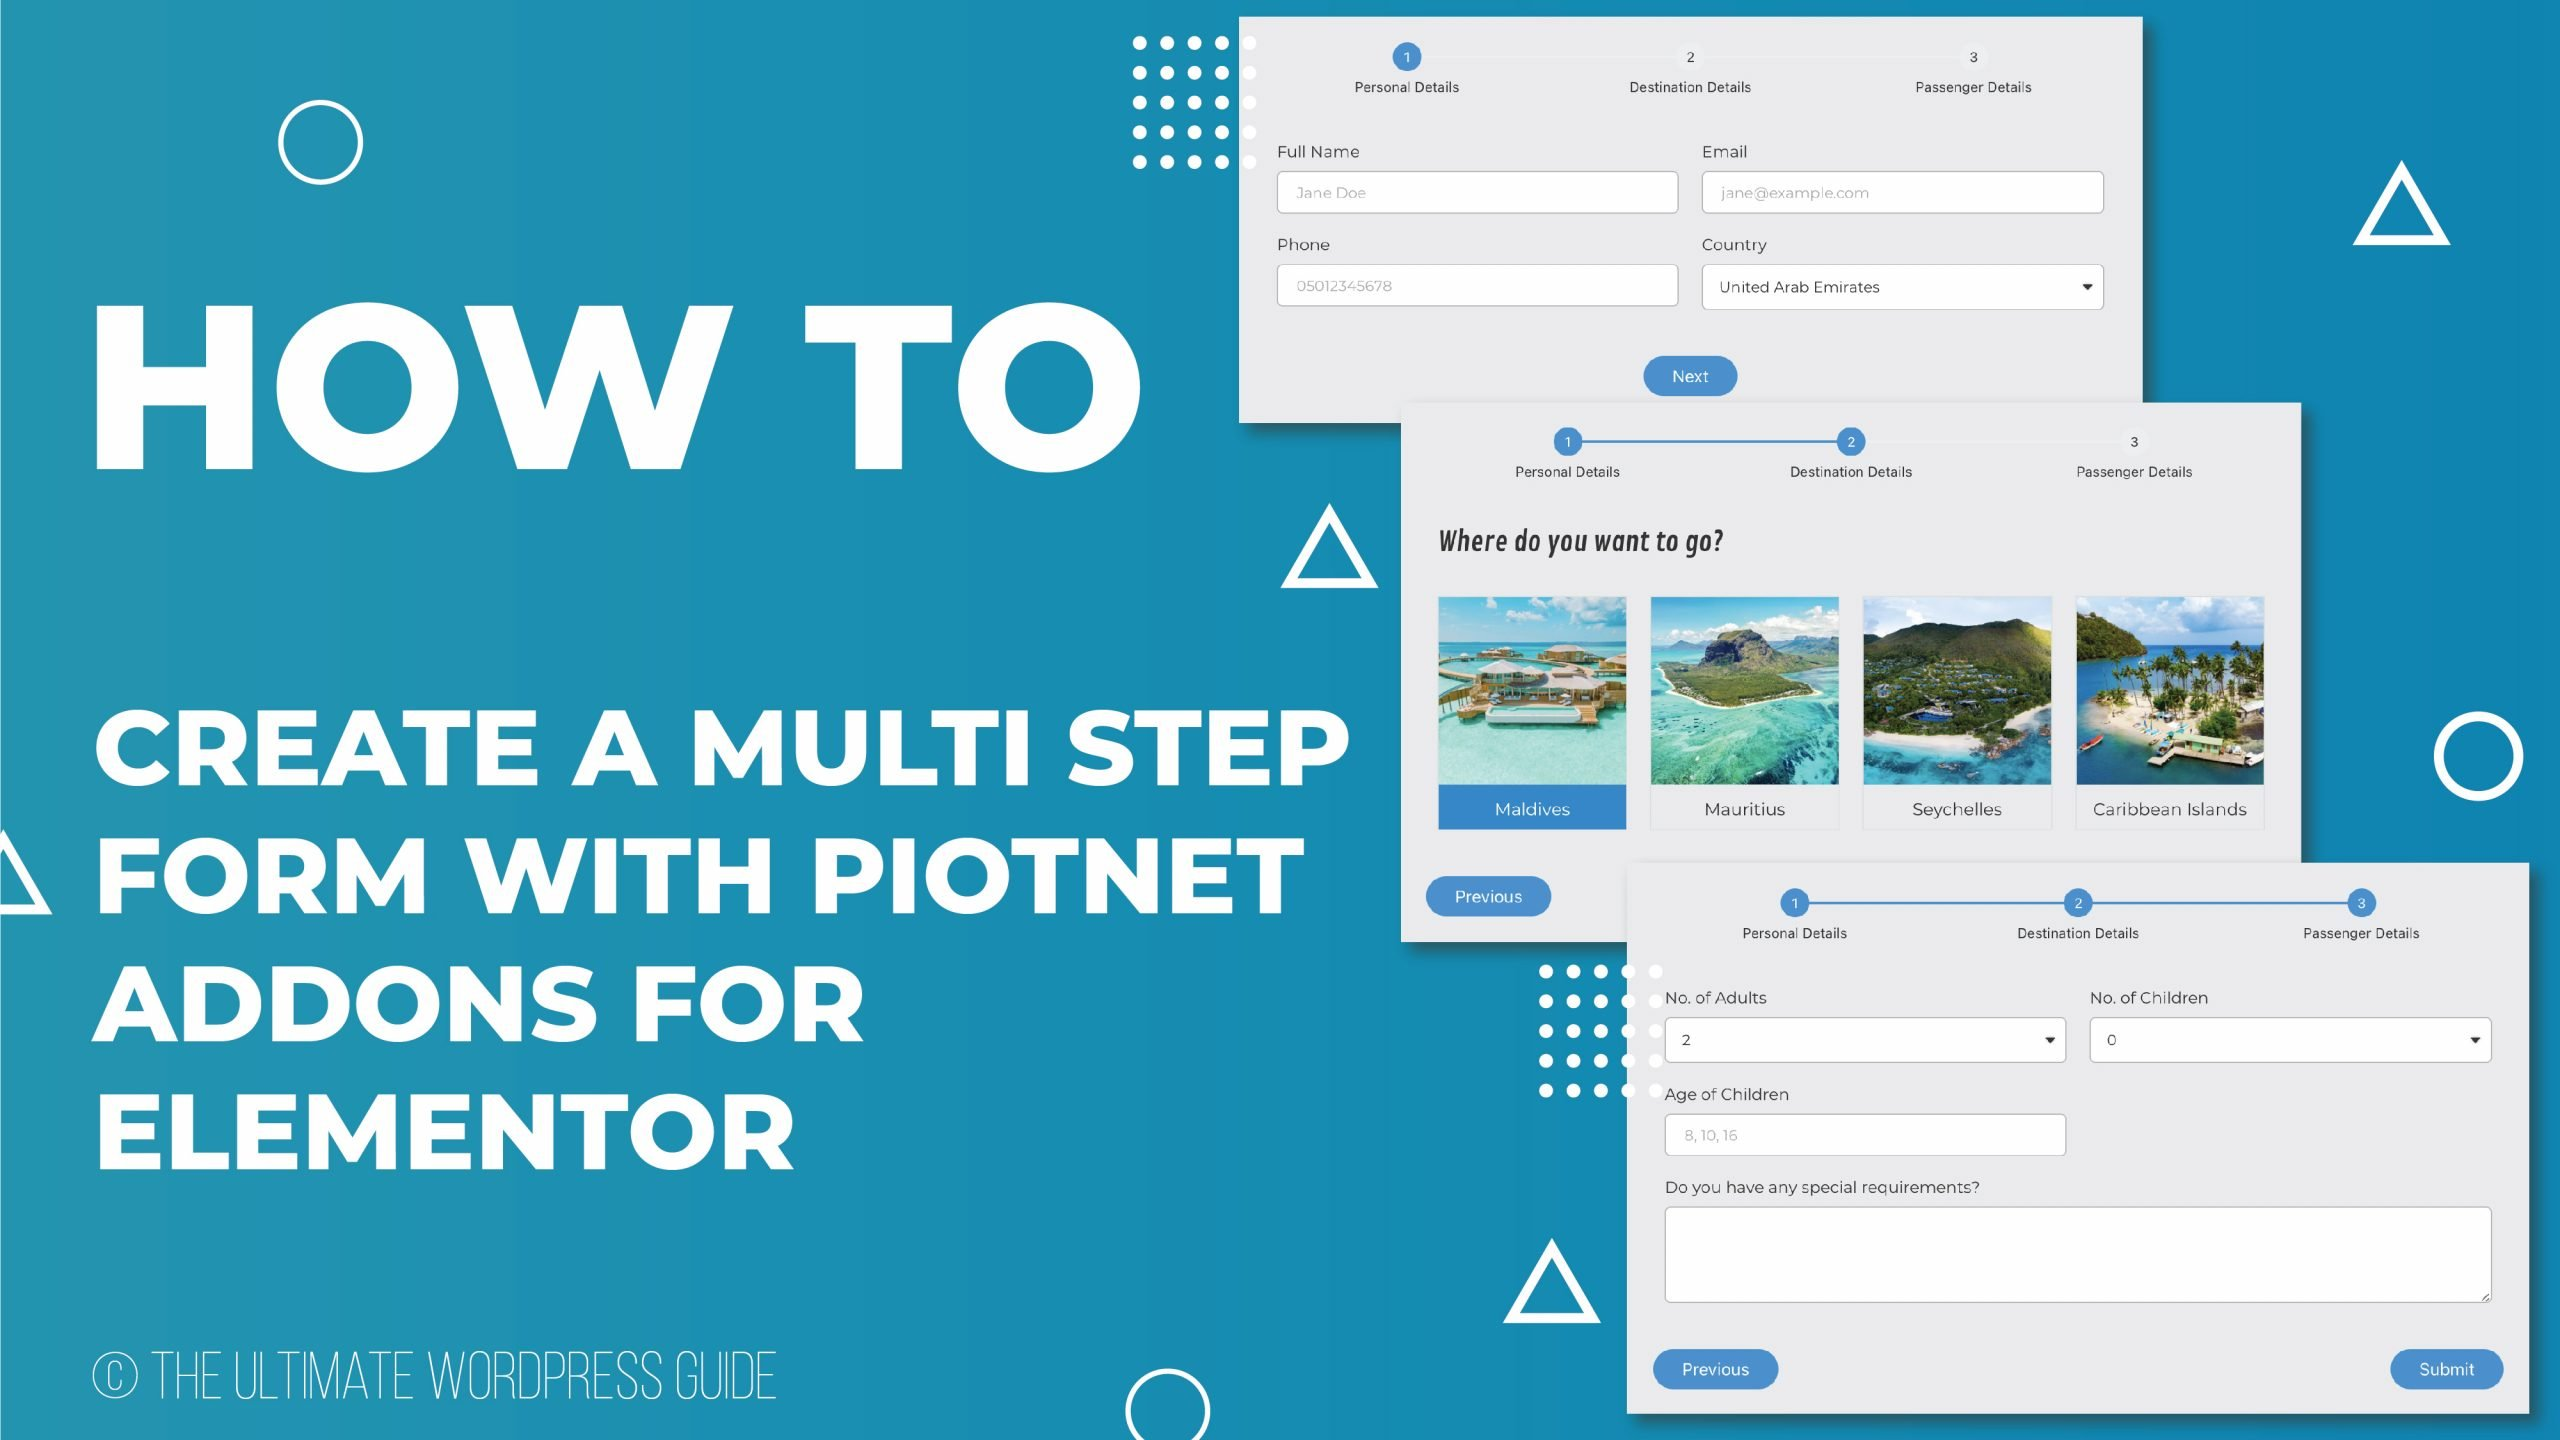 Create a Multi Step form with Piotnet Addons for Elementor